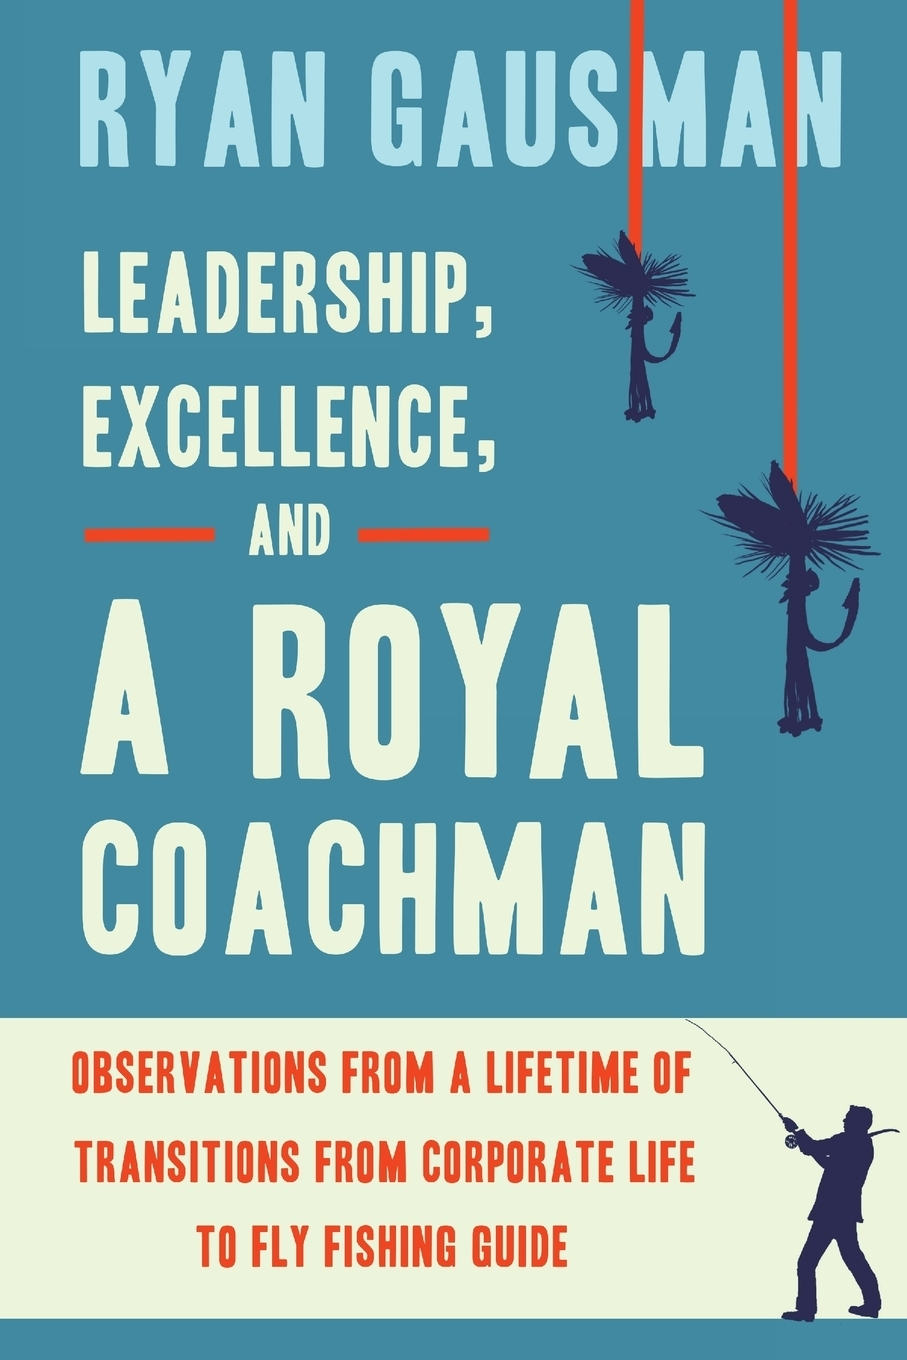 Ryan Gausman. Leadership, Excellence, and a Royal Coachman. Observations from a Lifetime of Transitions from Corporate Life to Fly Fishing Guide